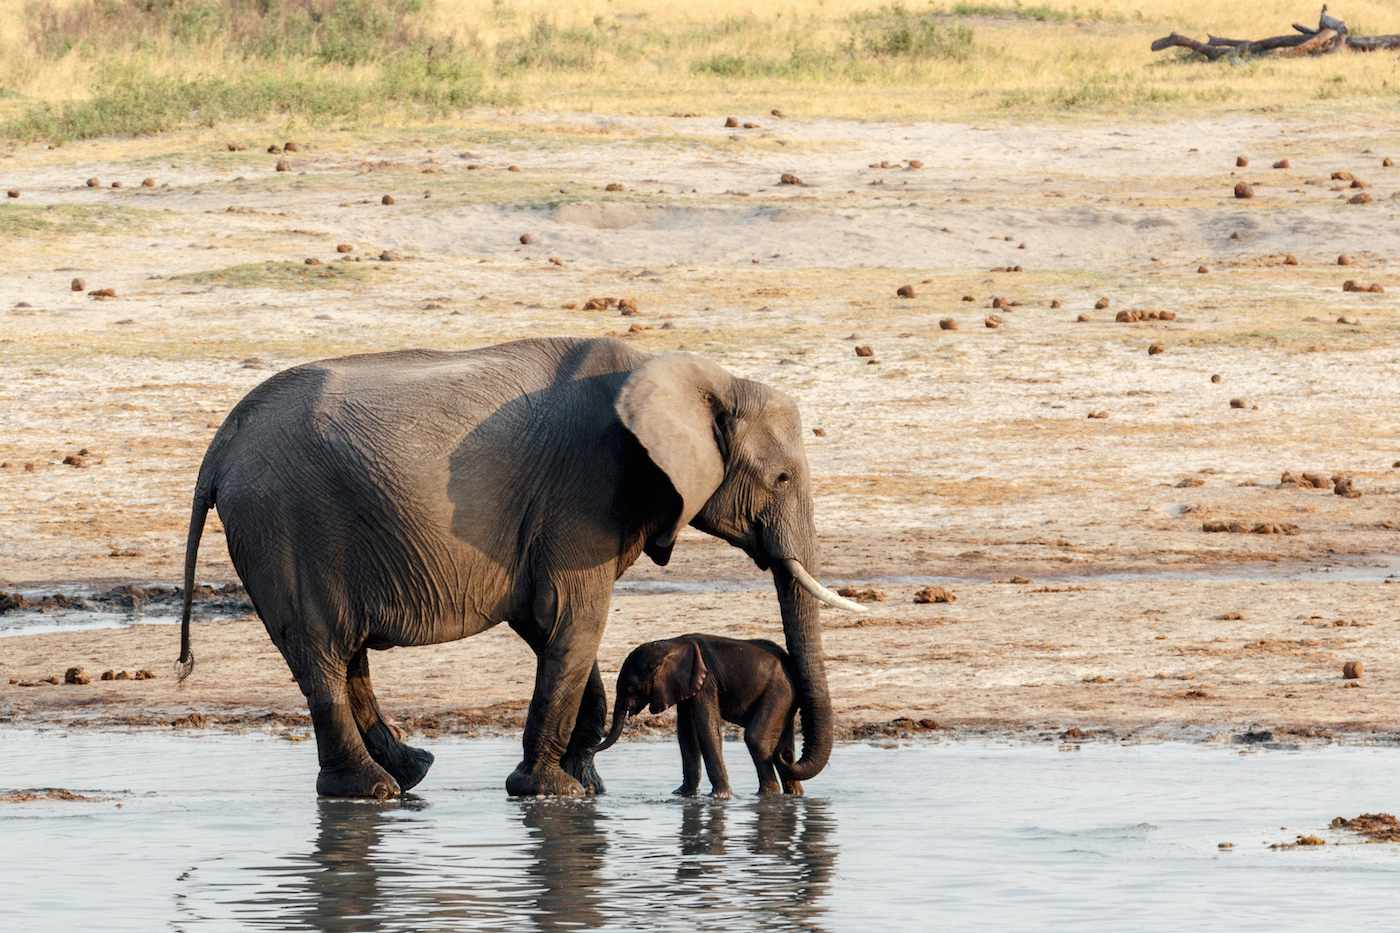 mother and child elephant standing in shallow water at a waterhole in Hwange national park, Matabeleland, North Zimbabwe